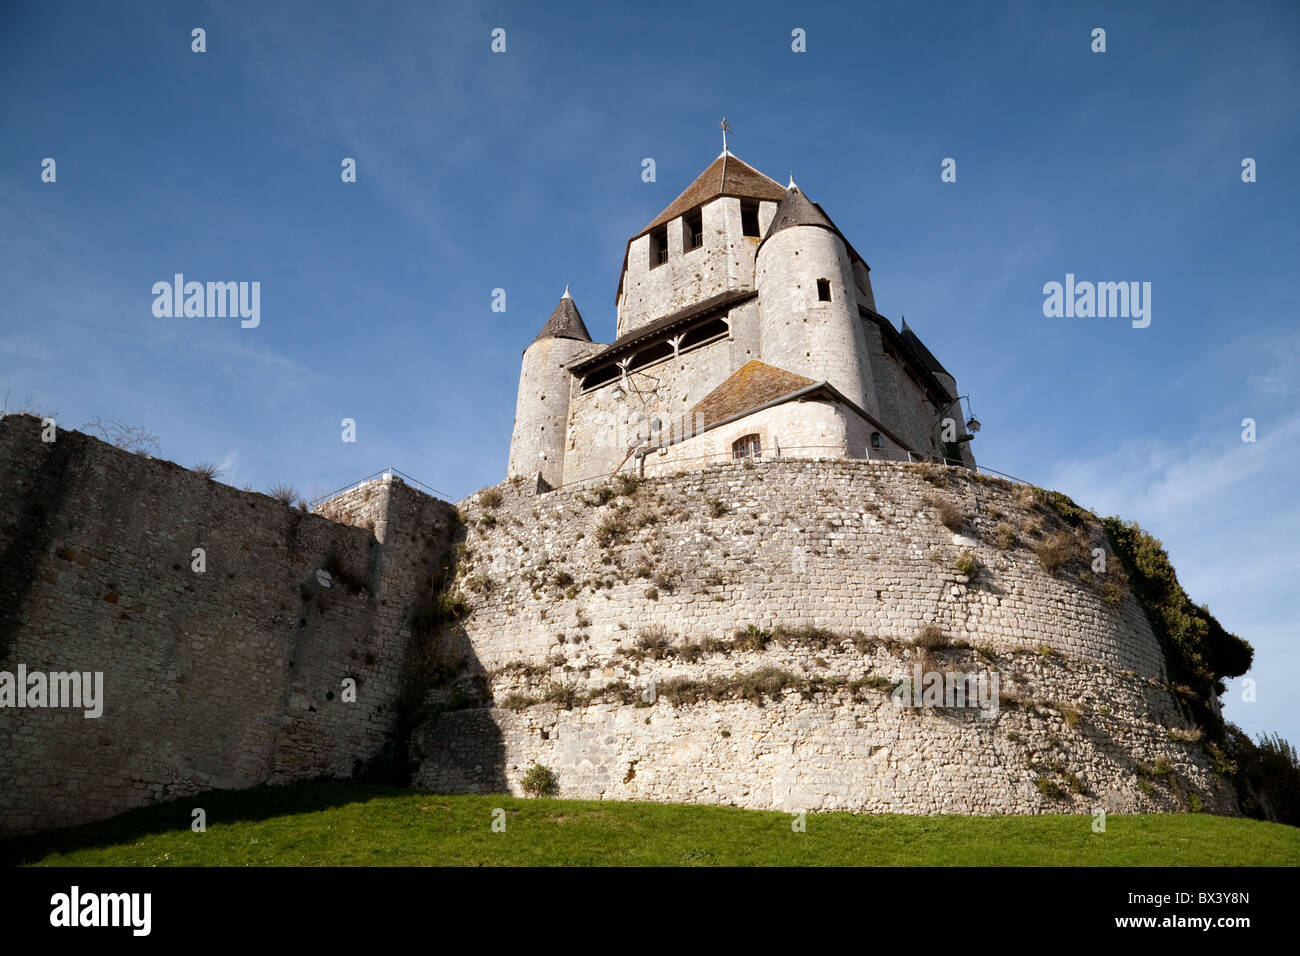 The Tour Cesar (Caesars Tower) in the medieval town of Provins, Seine et Marne, Ile de France France - Stock Image